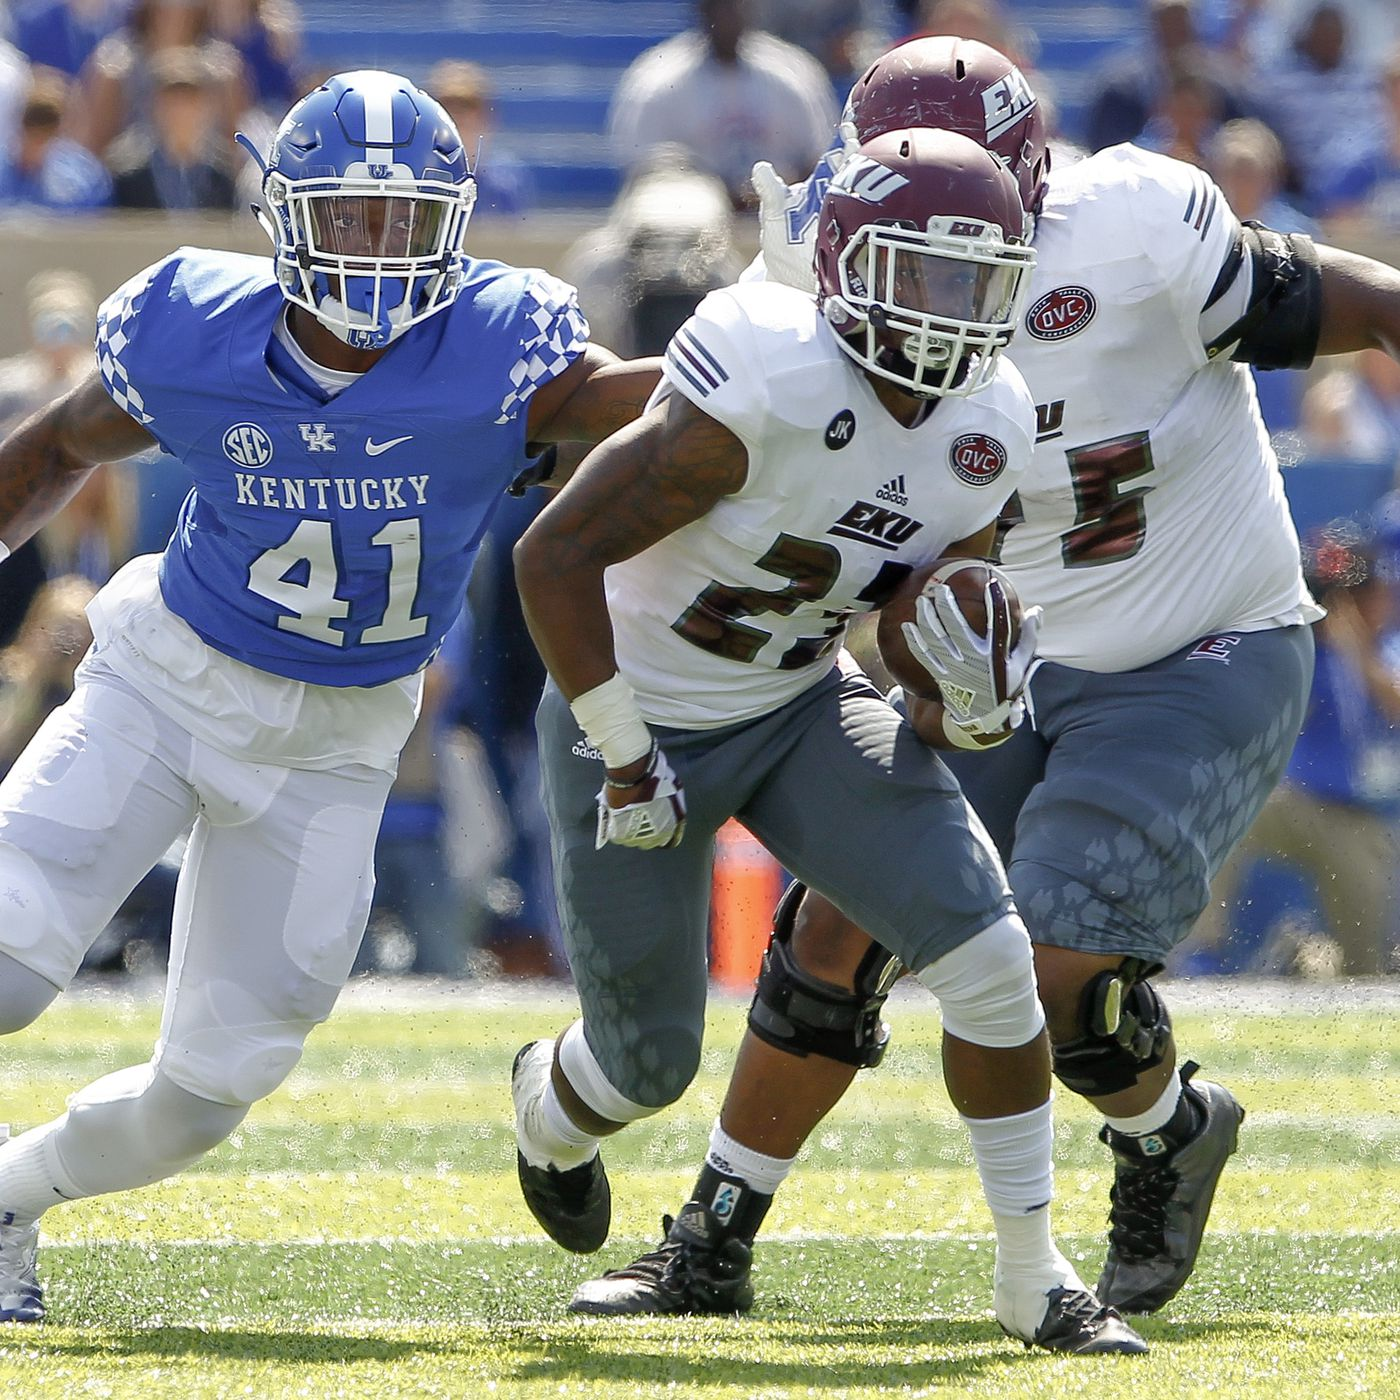 b2fbeb138 2019 NFL Draft: 5 edge prospects for the Detroit Lions - Pride Of ...